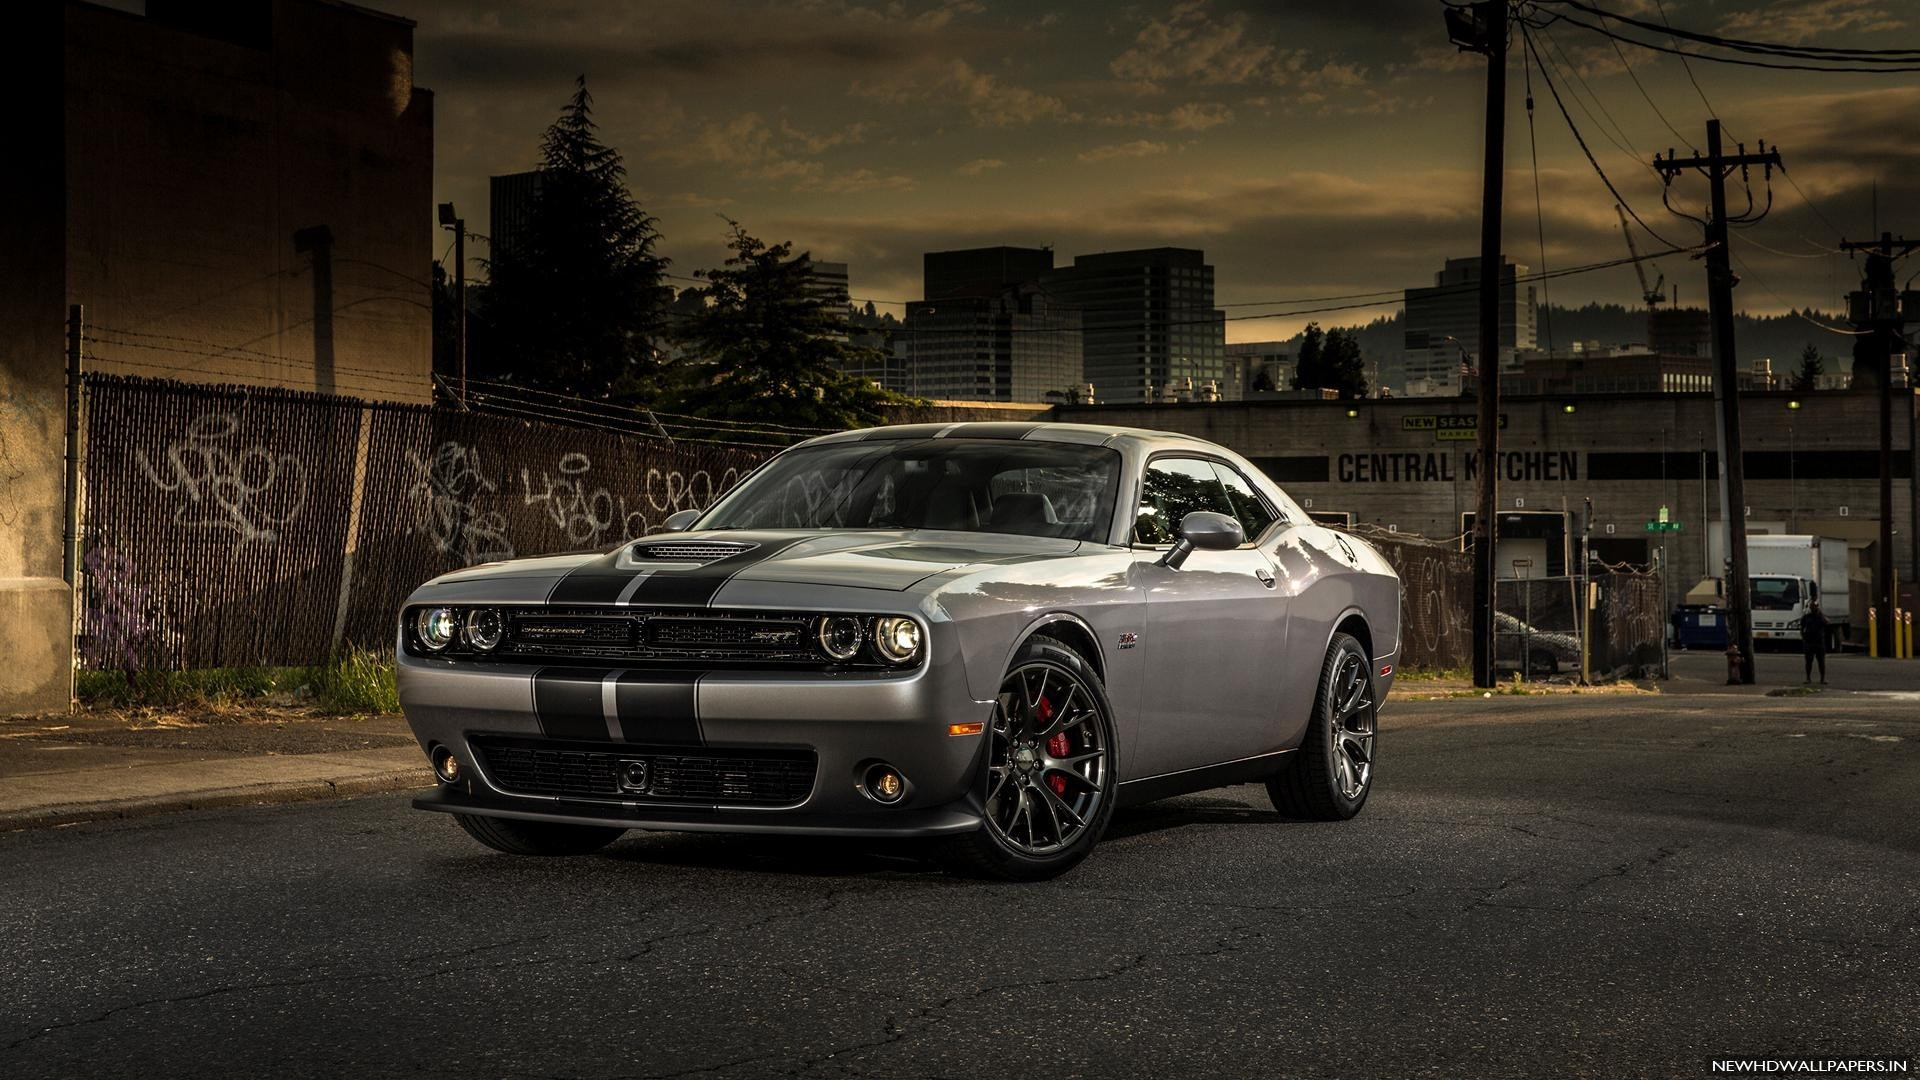 Dodge Challenger SRT 2015 HD Wallpapers   New HD Wallpapers 1920x1080